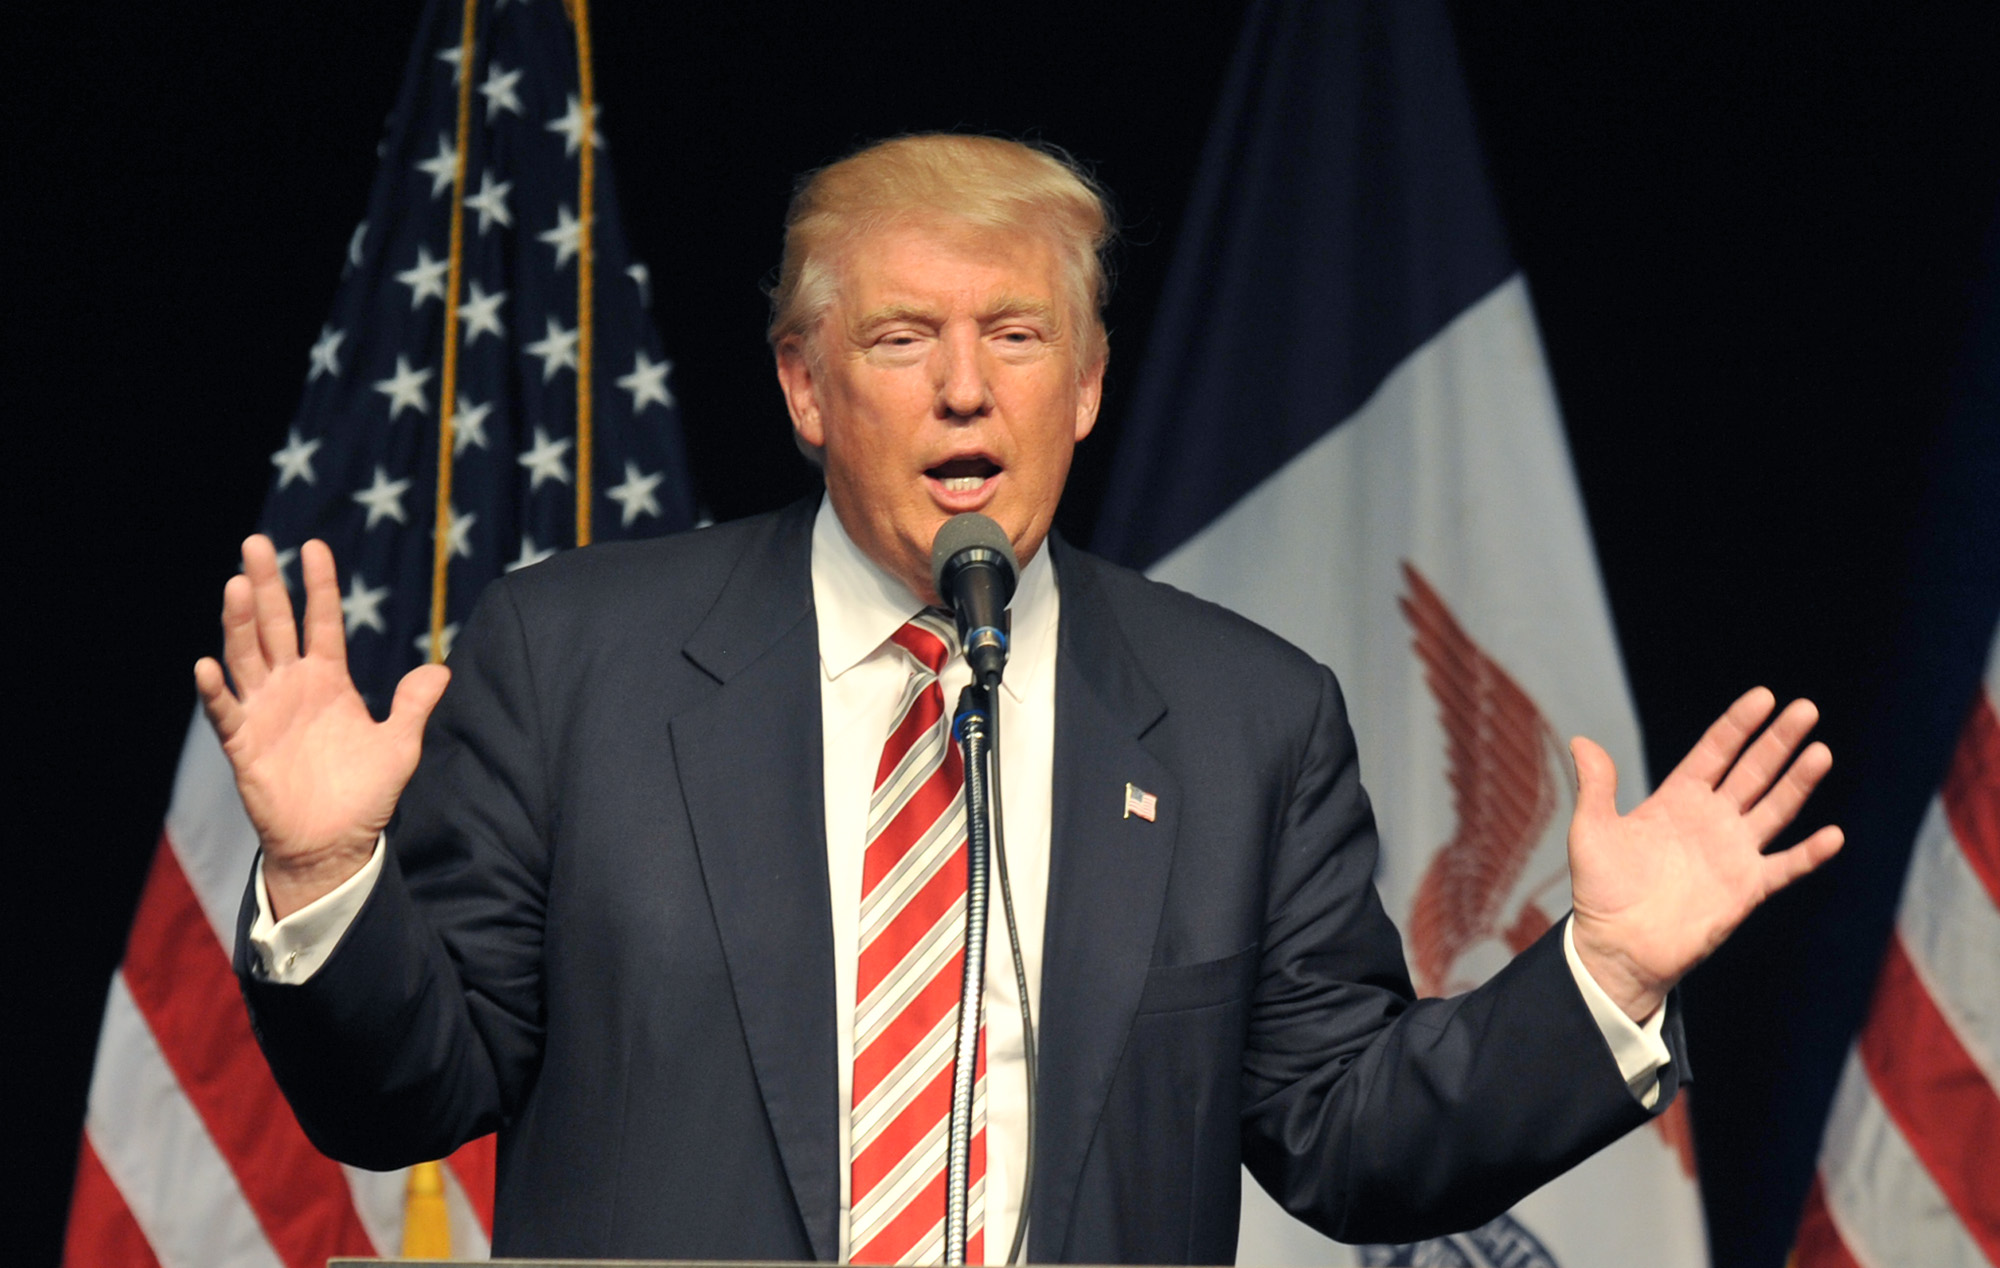 Republican Presidential nominee Donald Trump speaks at a campaign rally on September 13, 2016 in Clive, Iowa.